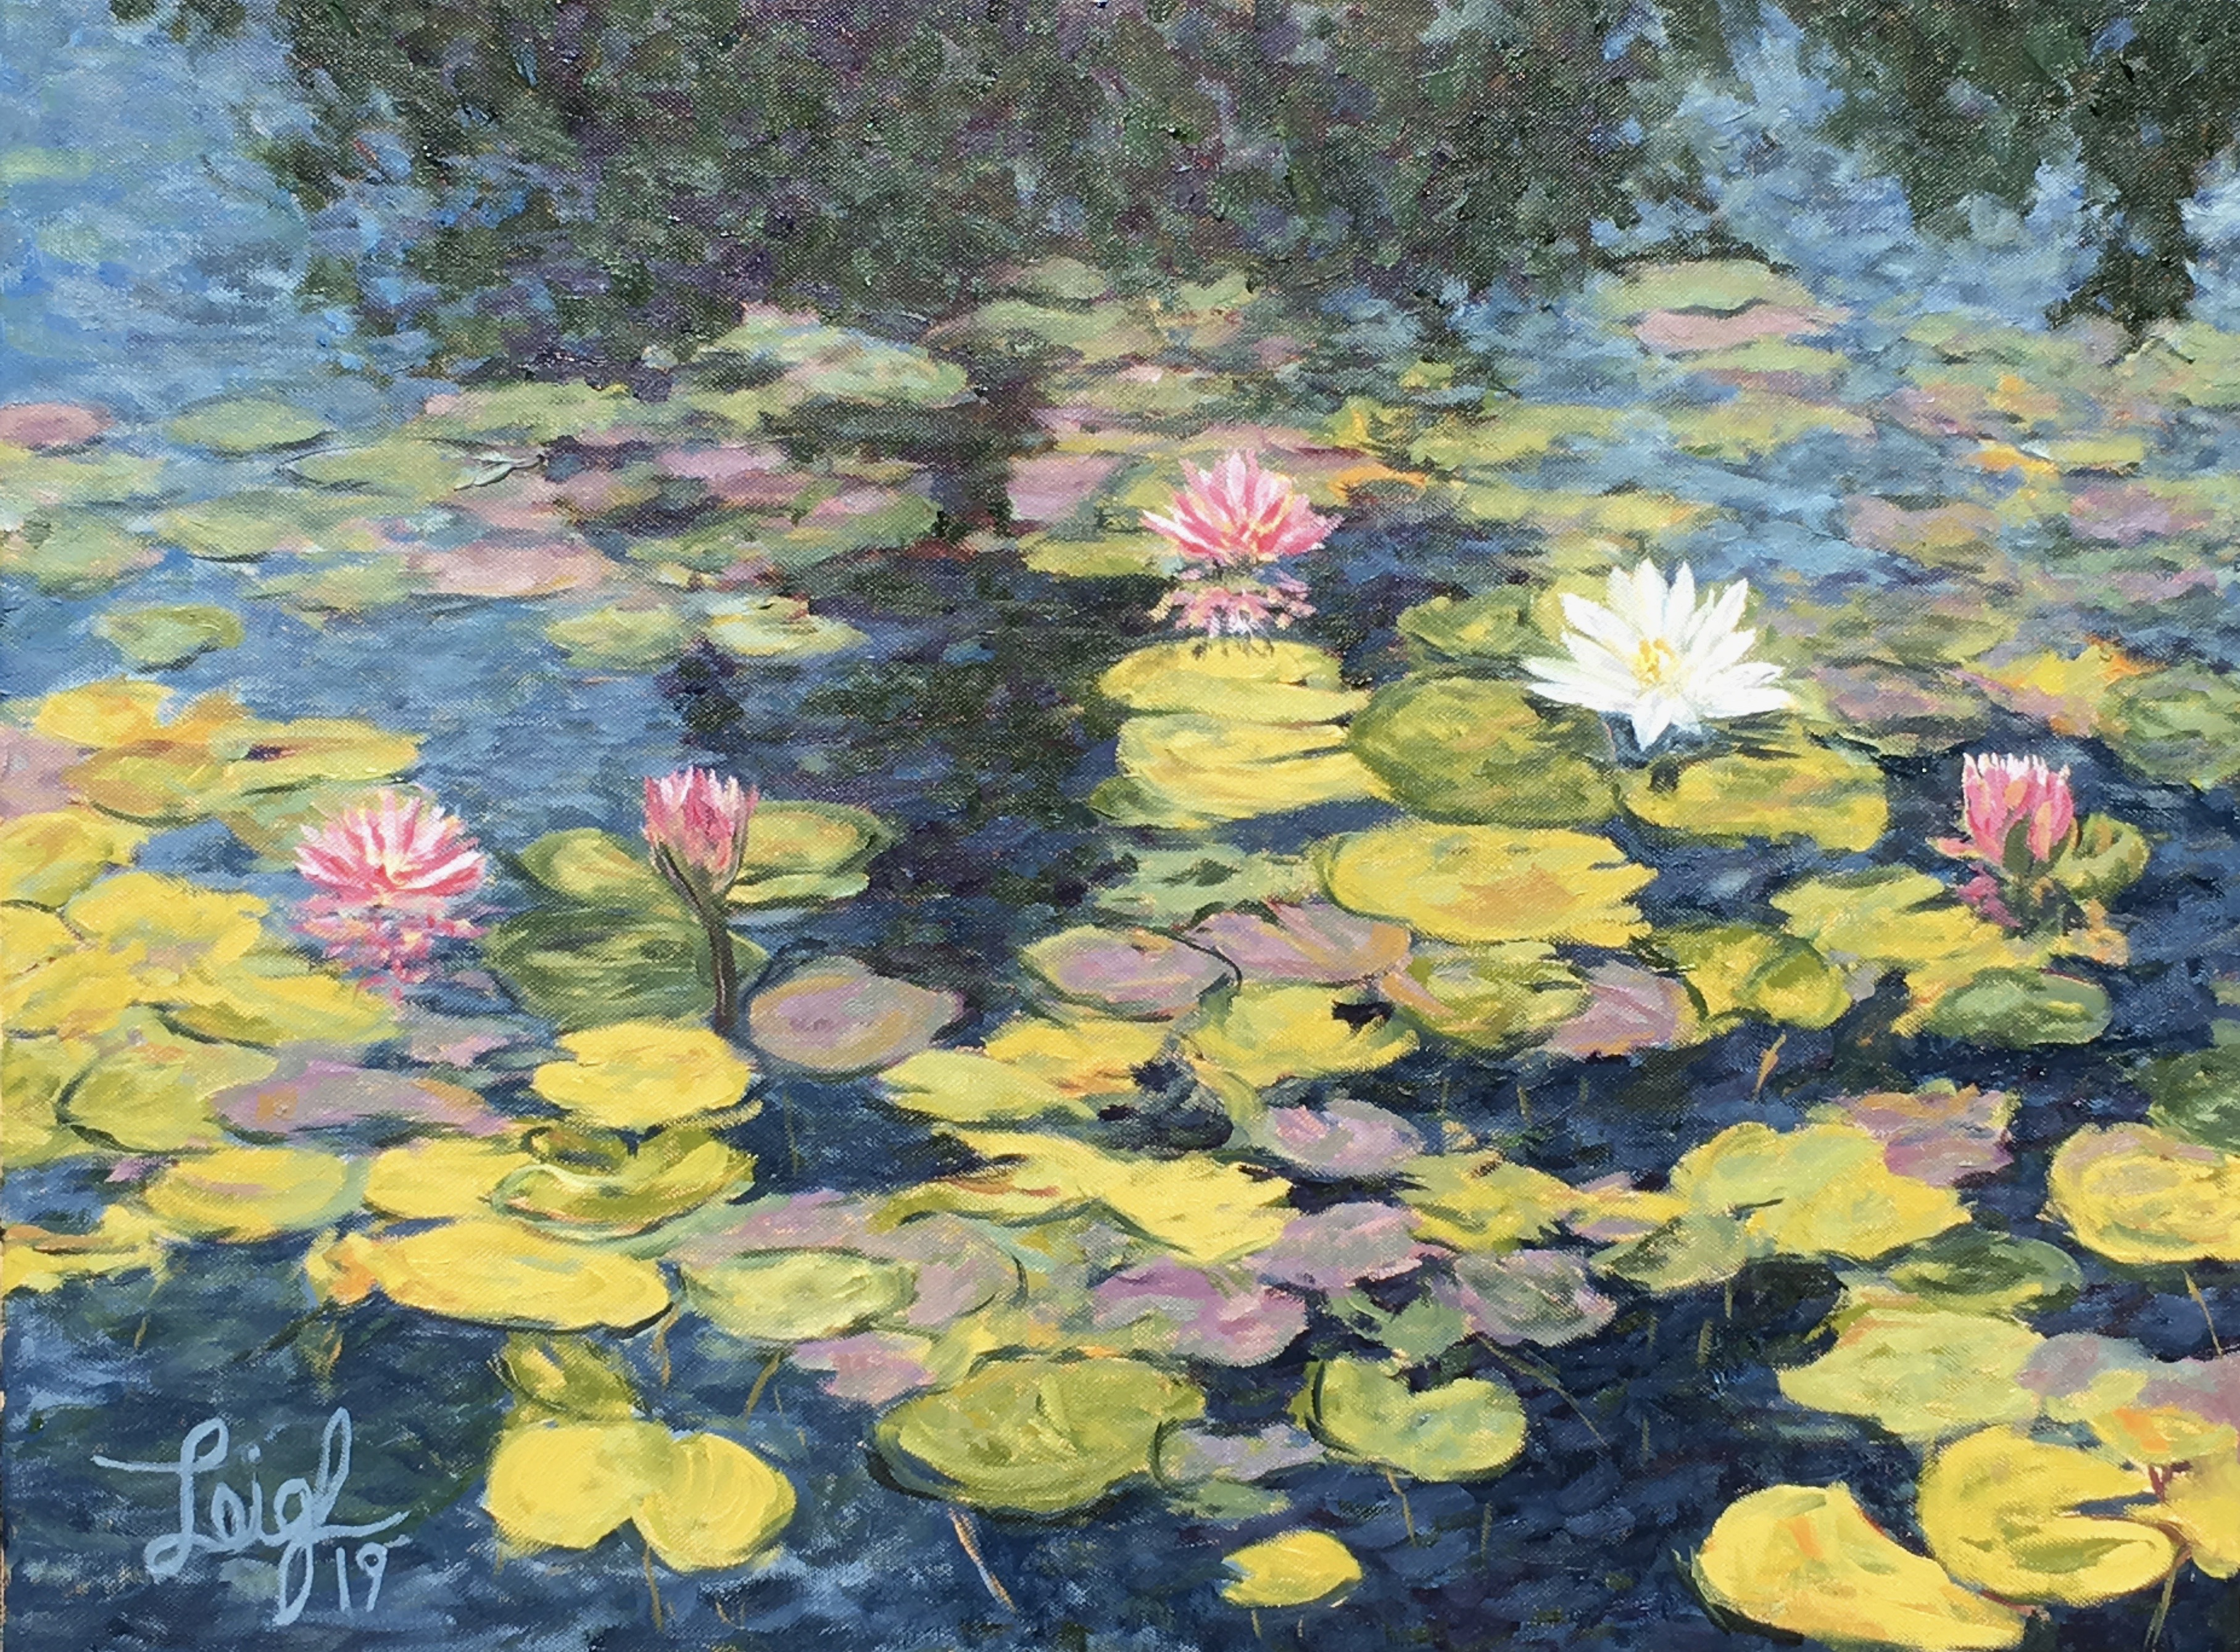 Water lilies in Balboa Park #2 2019  •  24 x 18